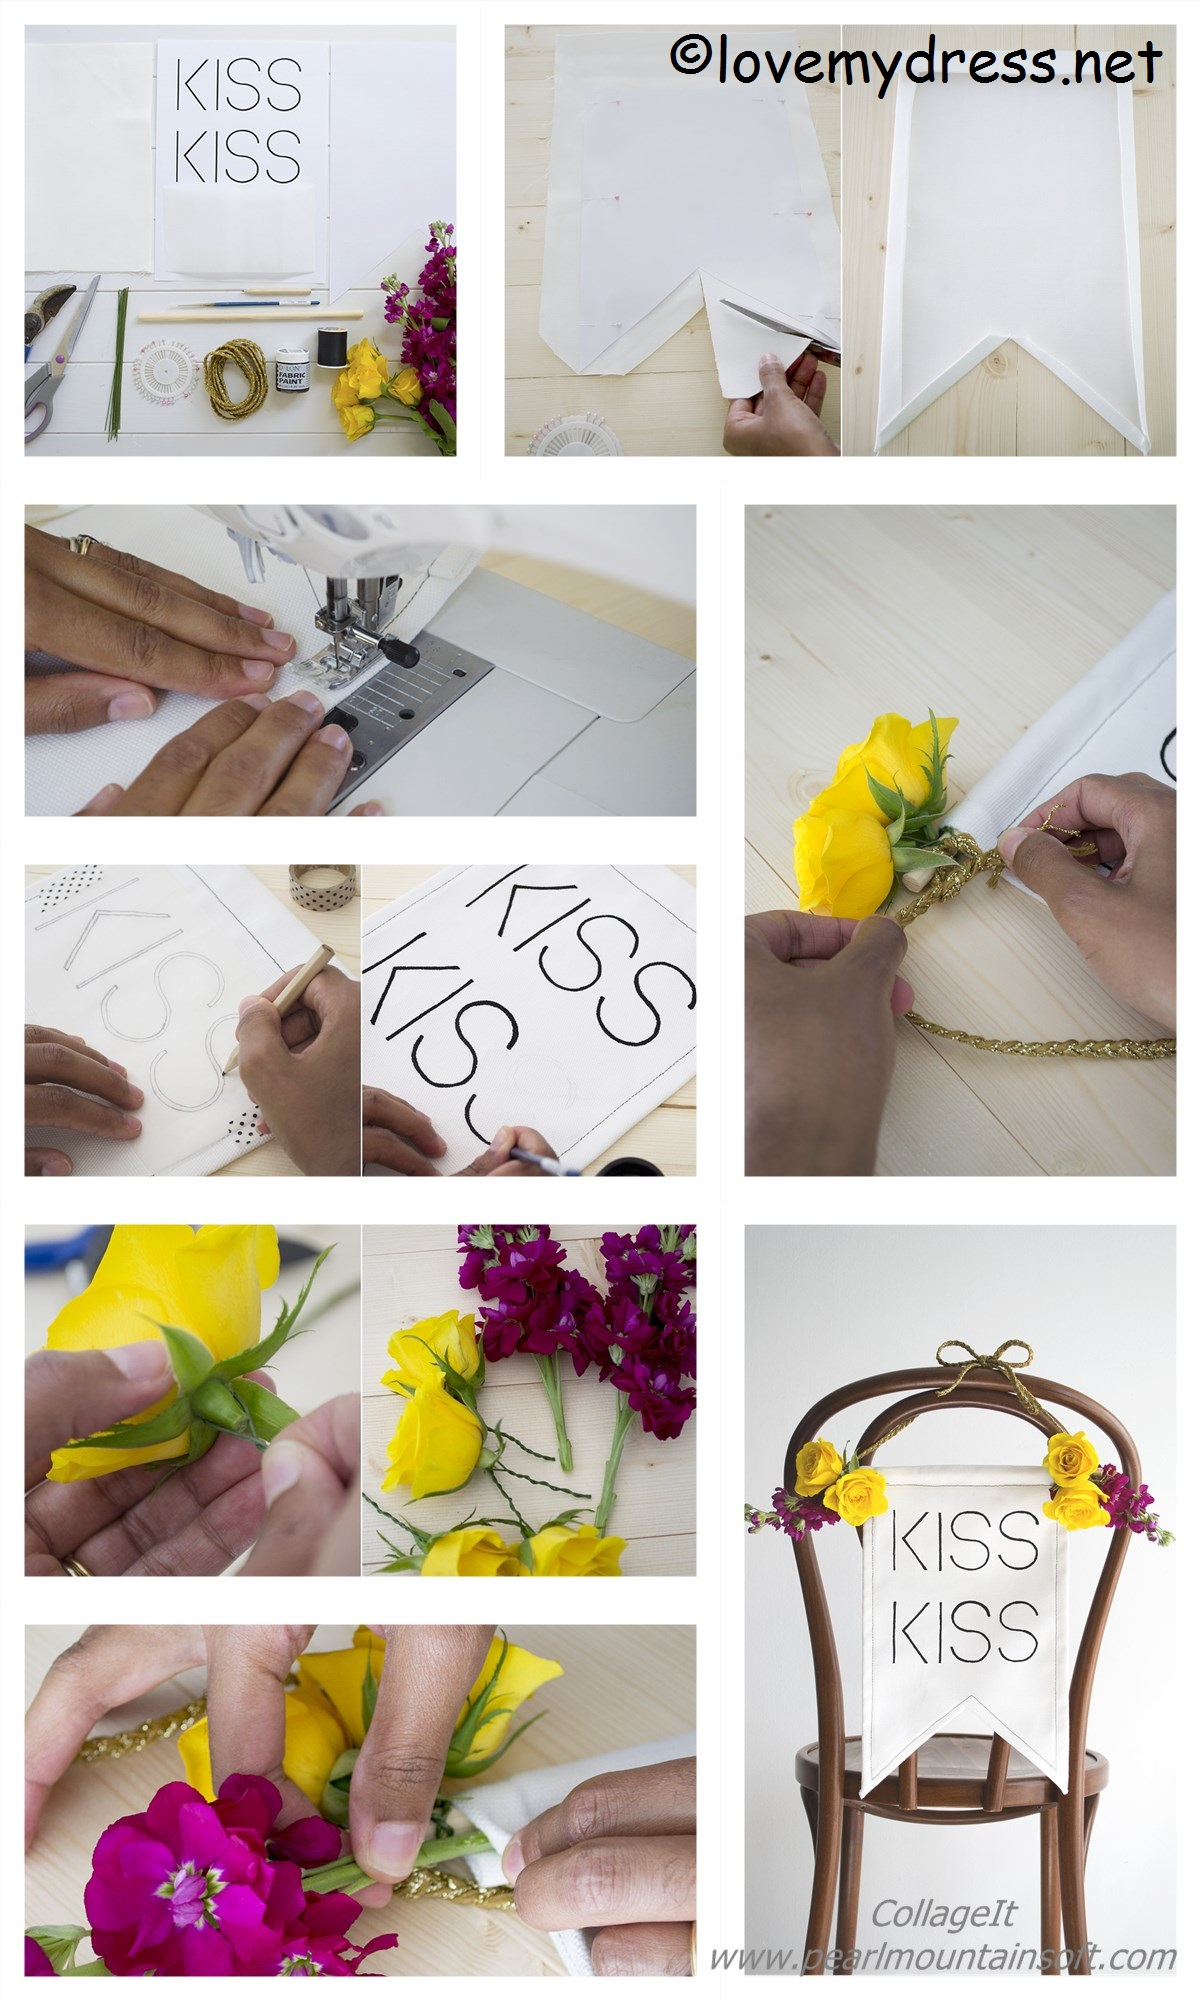 How to make a Kiss Wedding Chair